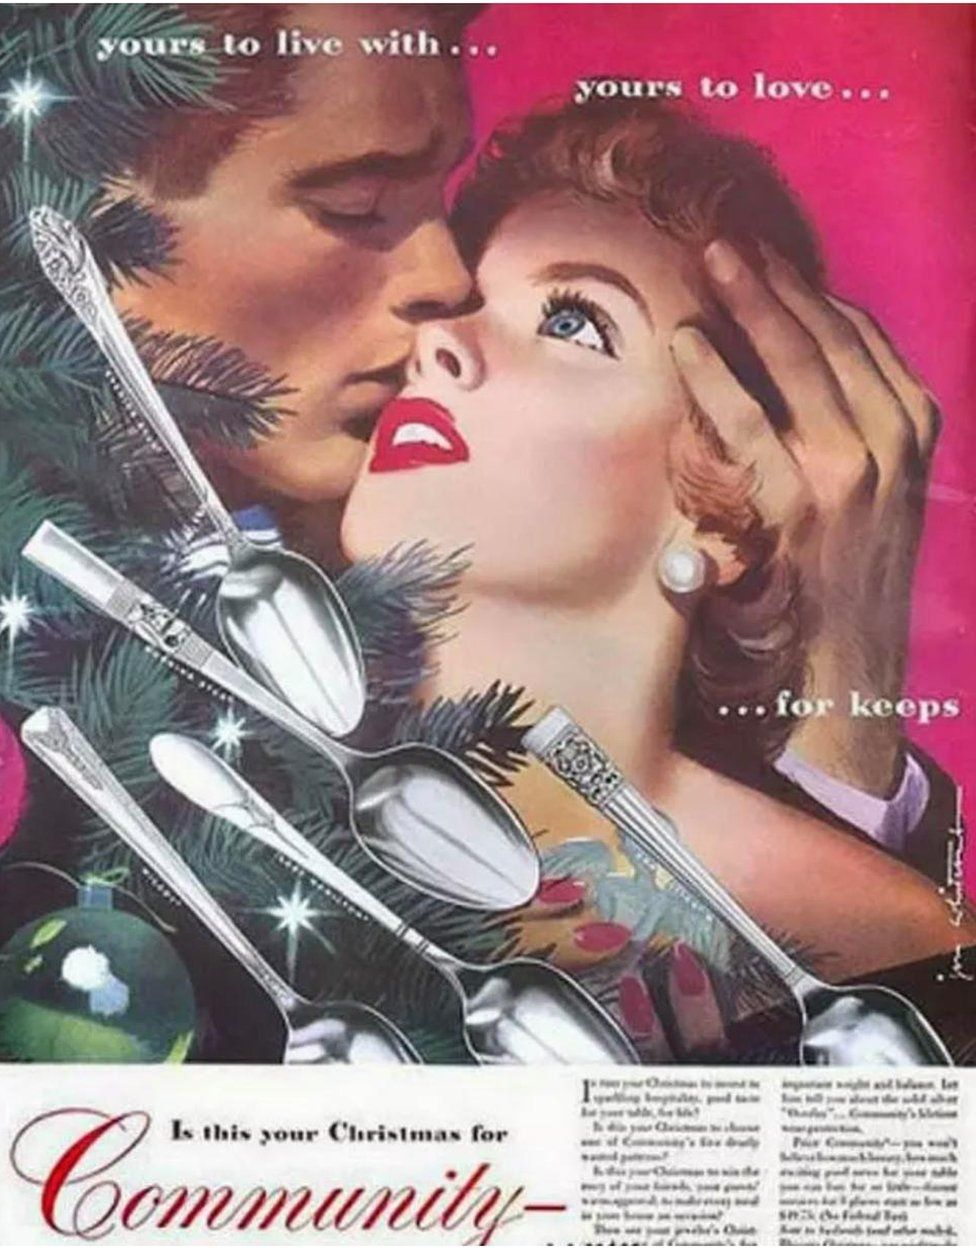 Advert for cutlery